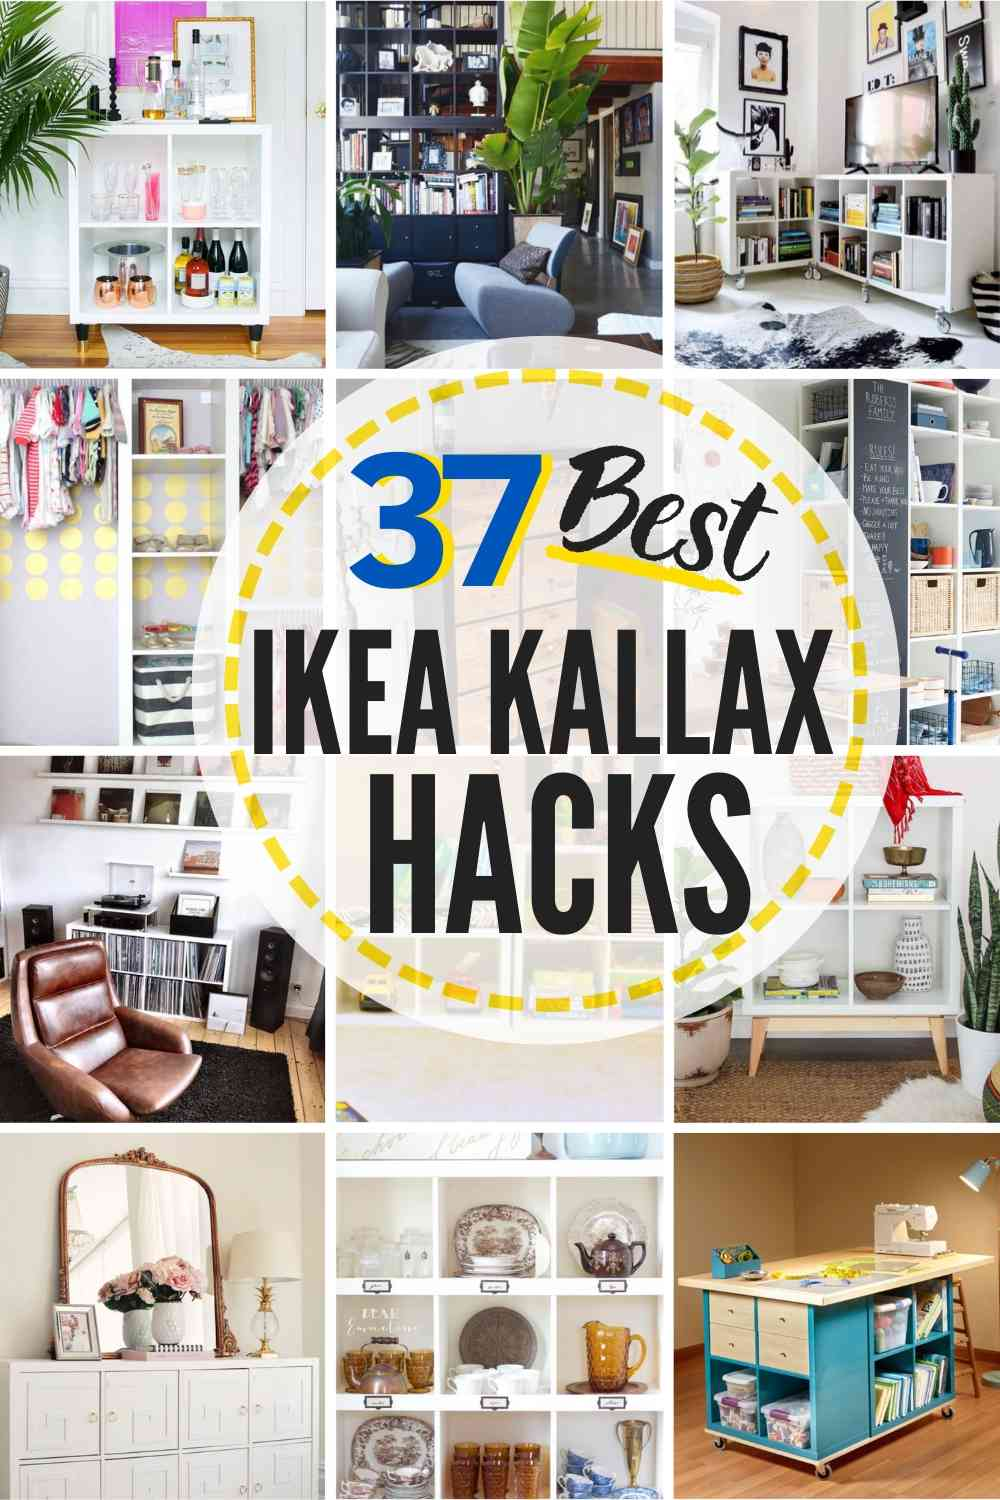 35 IKEA Kallax Hacks that are MIND-BLOWING!